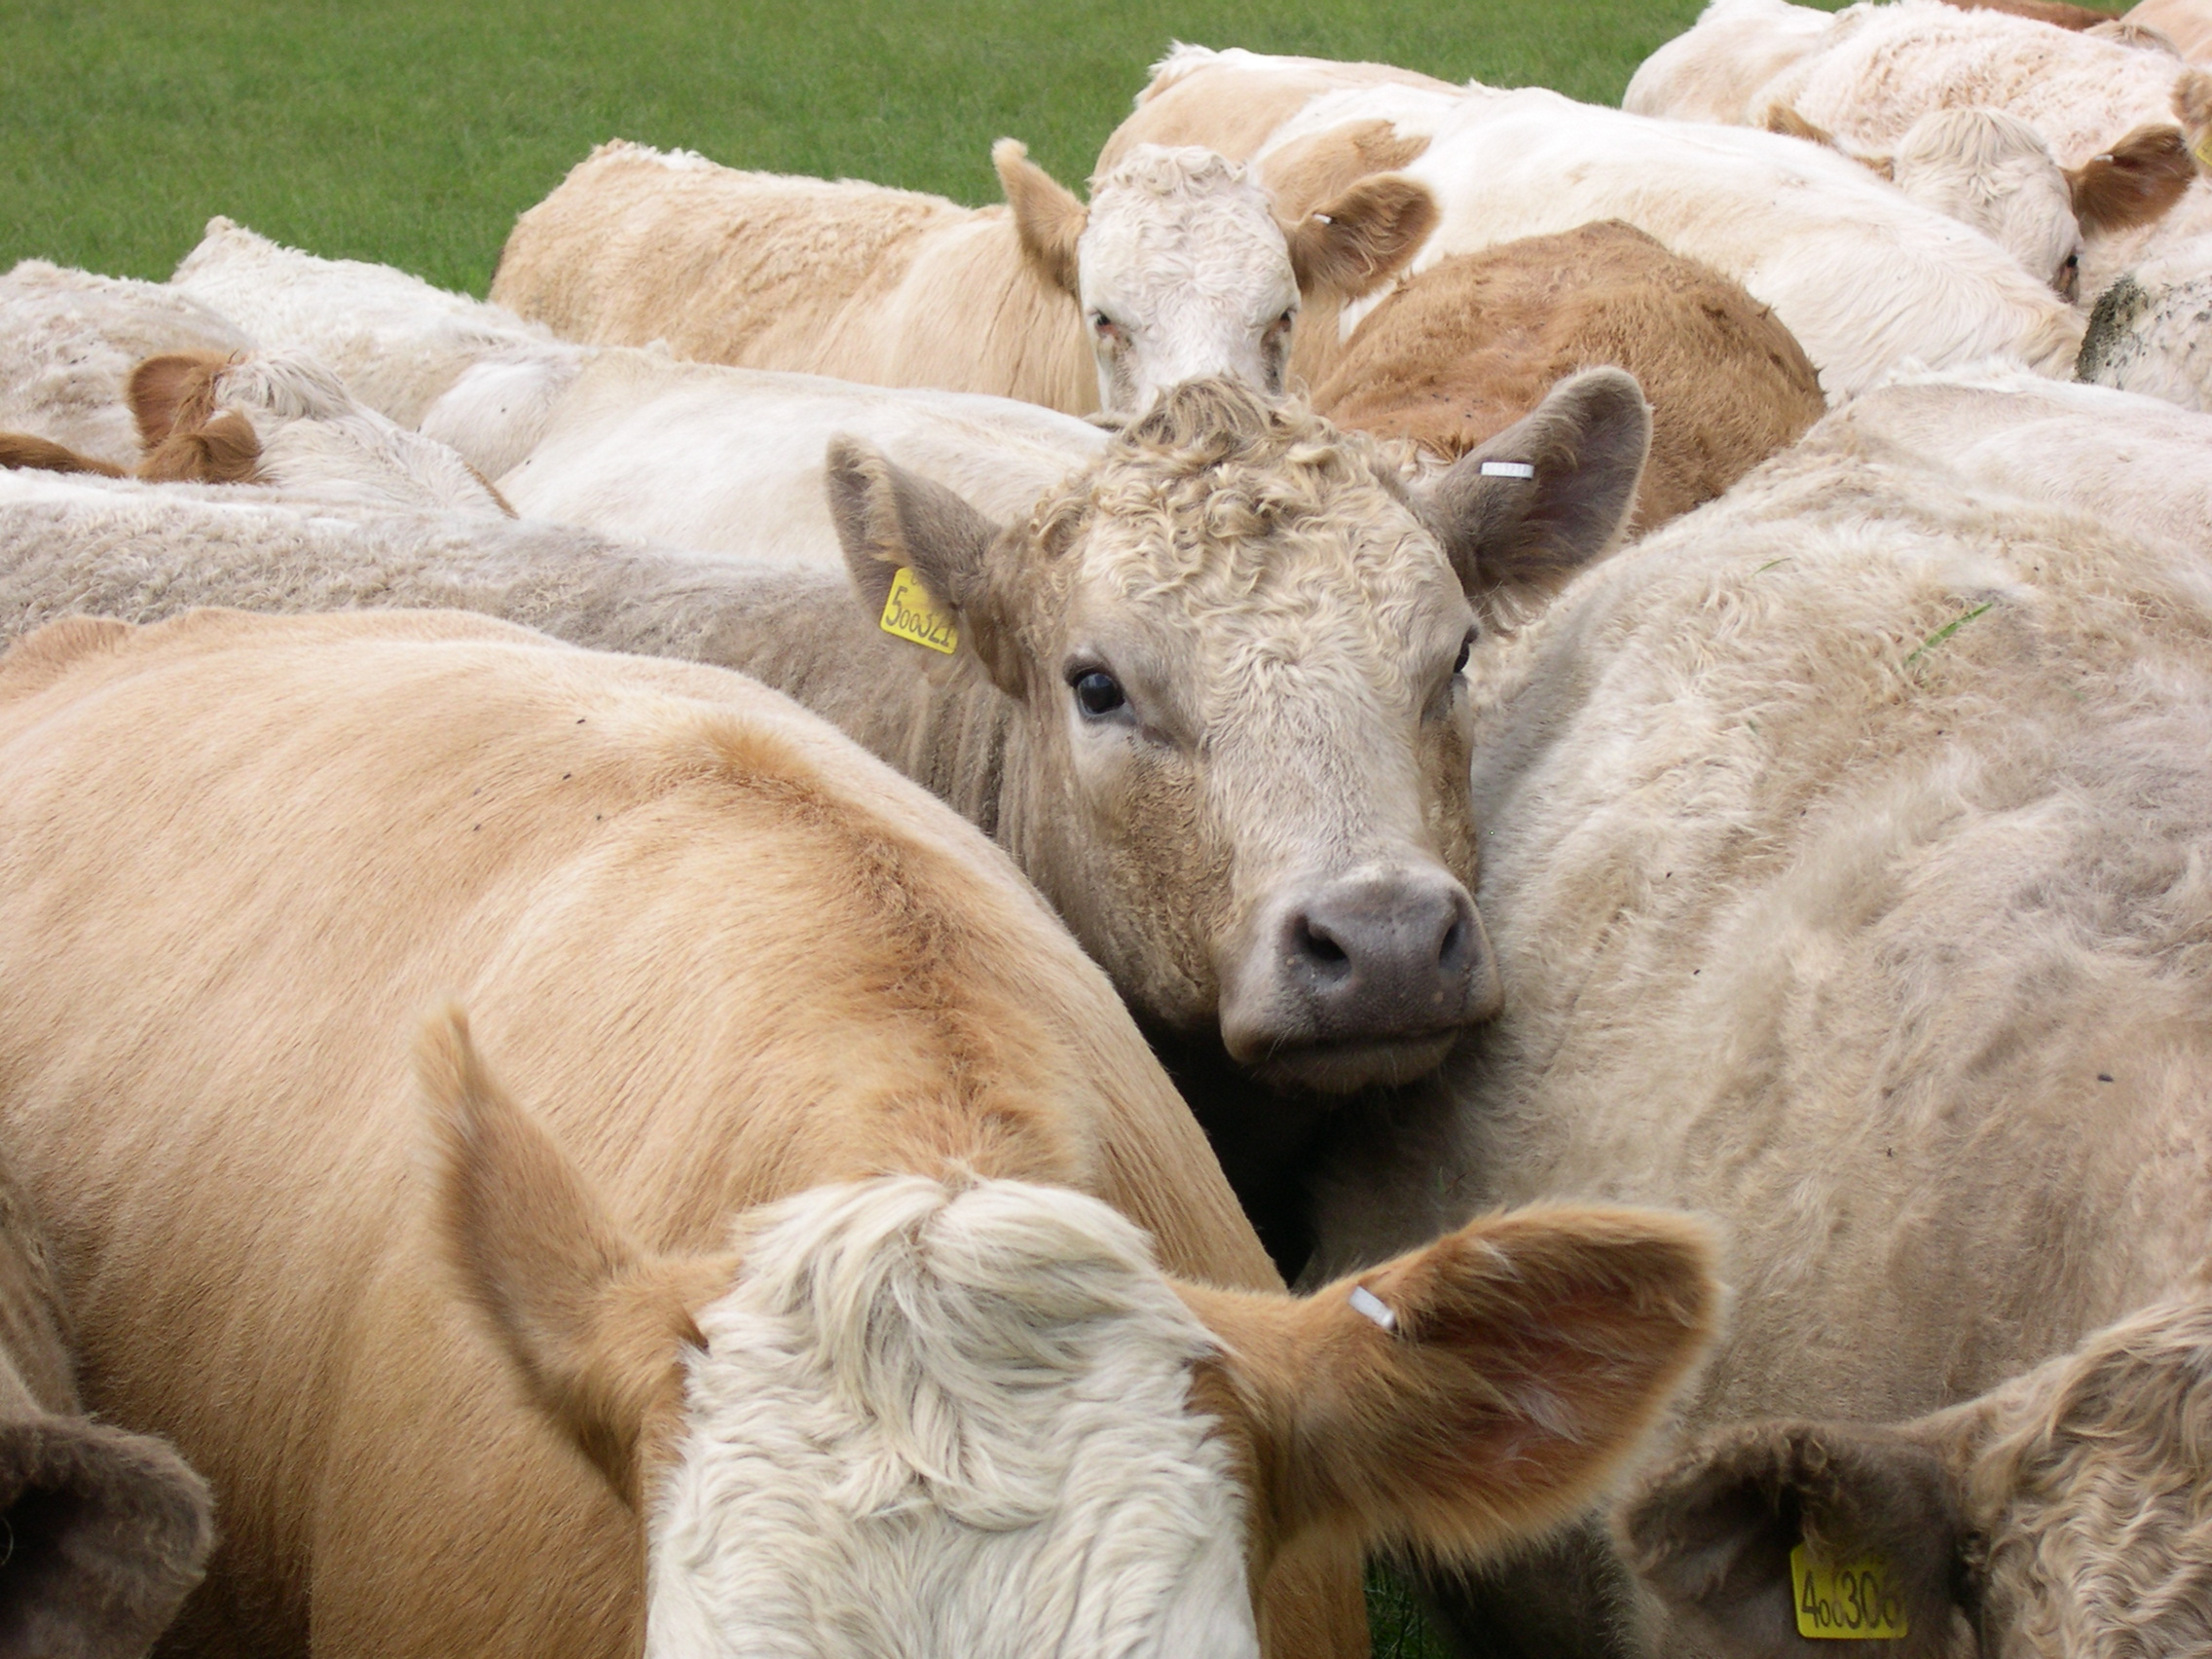 steer Are You Just One of the Herd? The LinkedIn Is Your Resume Debate Continues.